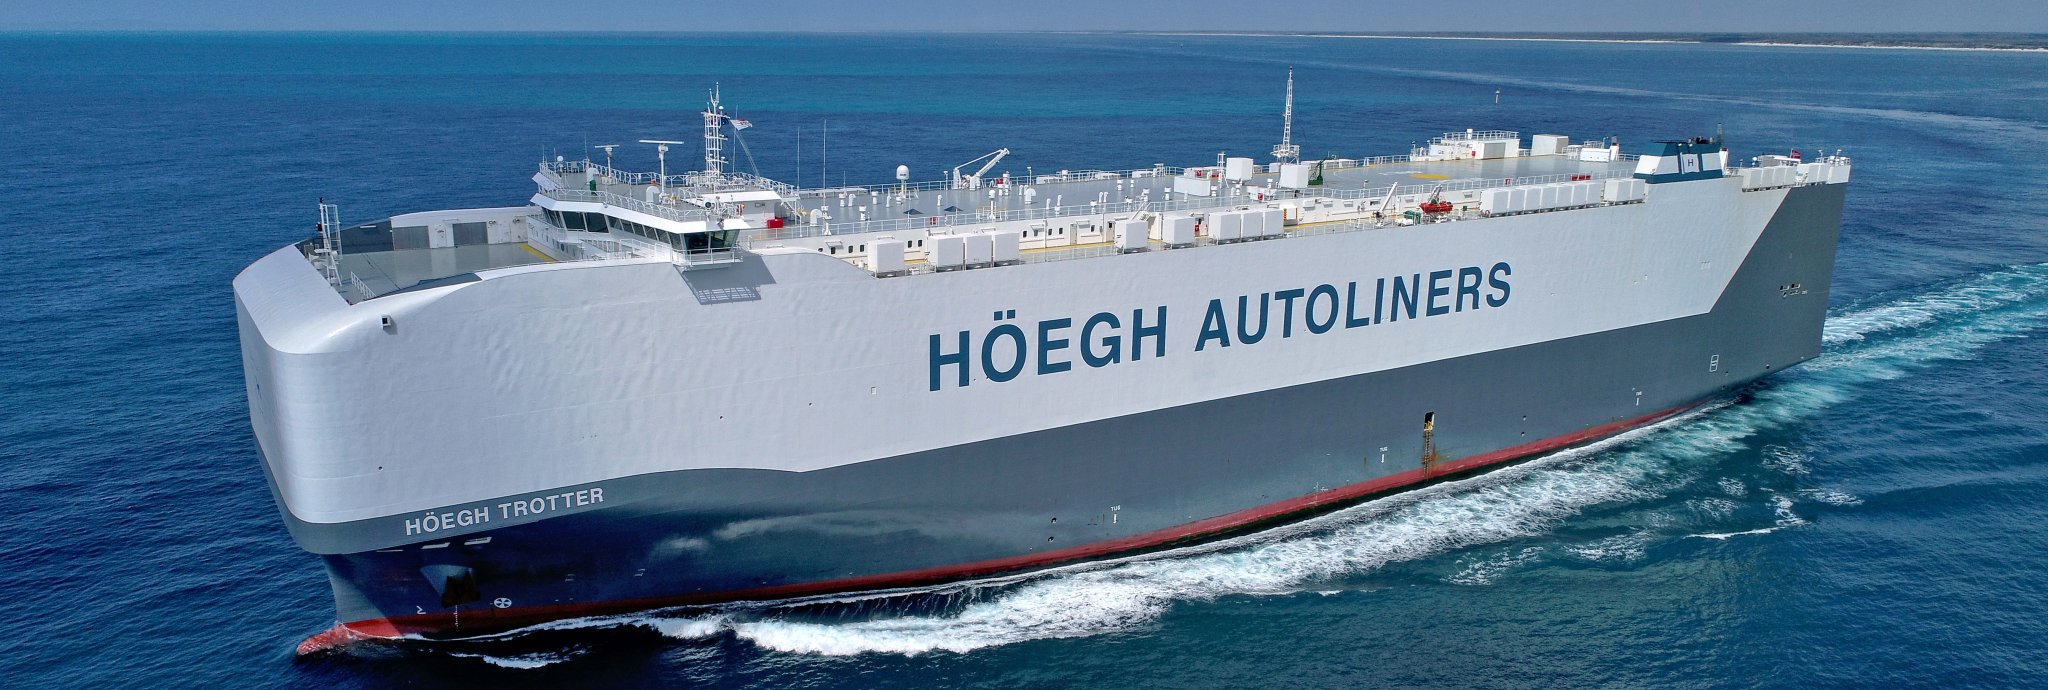 Increased express service to Oceania - Höegh Autoliners